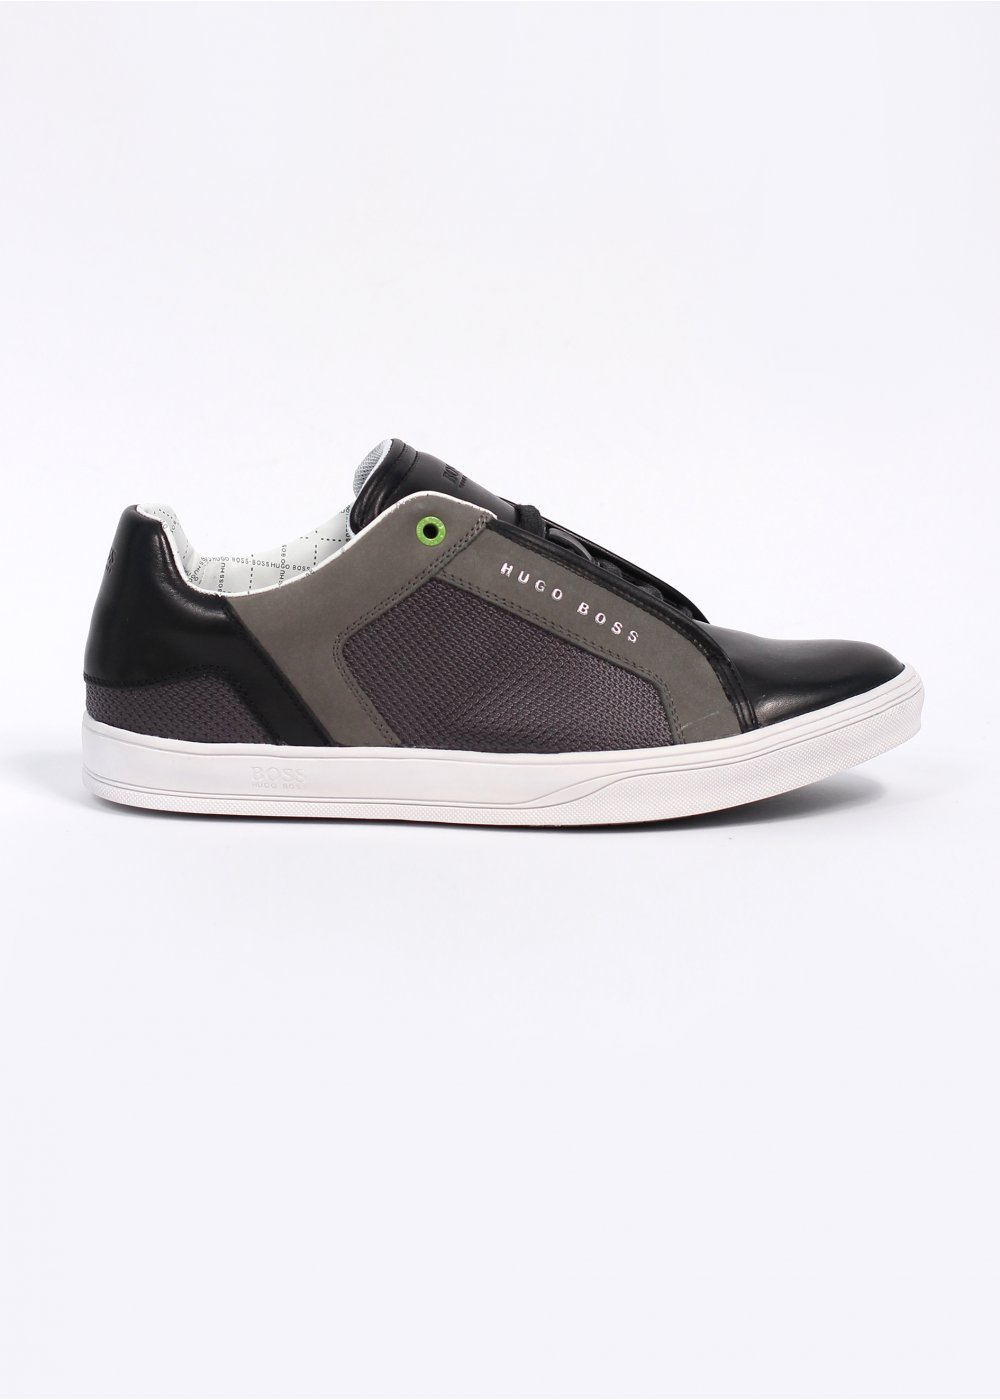 Hugo Boss Green Attain Shoes - Charcoal - Triads Mens from ... Hugo Boss Green Shoes